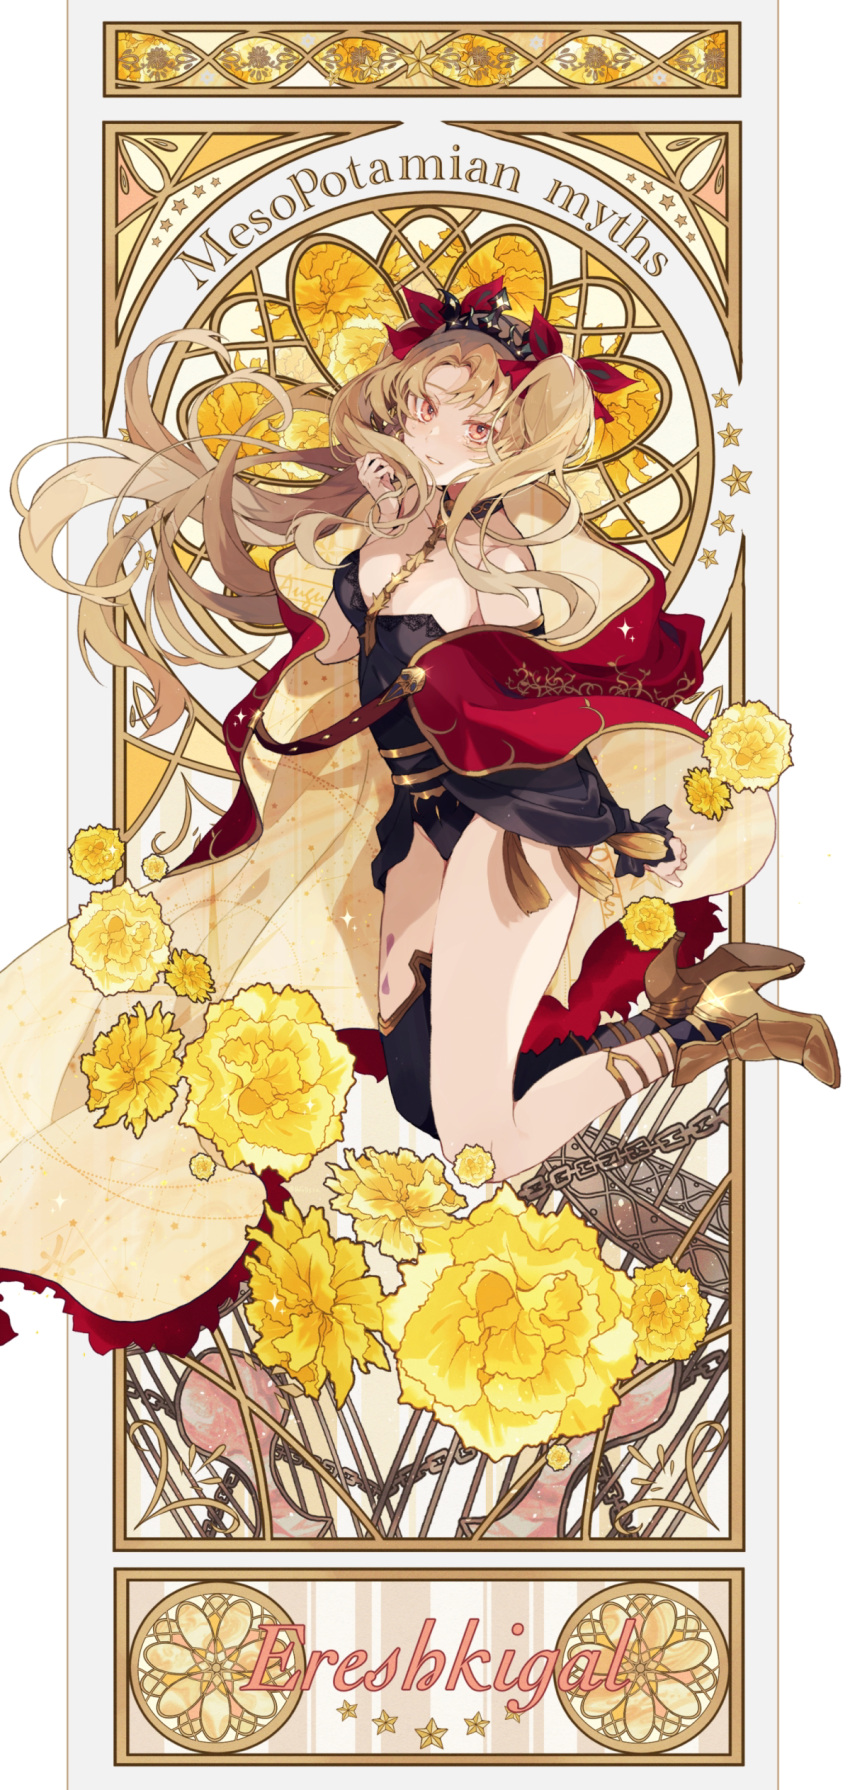 1girl absurdres ankle_boots black_leotard blonde_hair blush boots bow breasts cape character_name cowboy_shot crown detached_sleeves english_text ereshkigal_(fate) fate/grand_order fate_(series) floating_hair hair_bow hand_up high_heel_boots high_heels highres leotard long_hair long_sleeves looking_at_viewer medium_breasts orange_eyes parted_lips pink_eyes red_bow red_cape satsuki_(miicat) simple_background single_thighhigh smile solo spine standing strapless strapless_leotard thigh-highs twintails two-sided_cape two-sided_fabric white_background